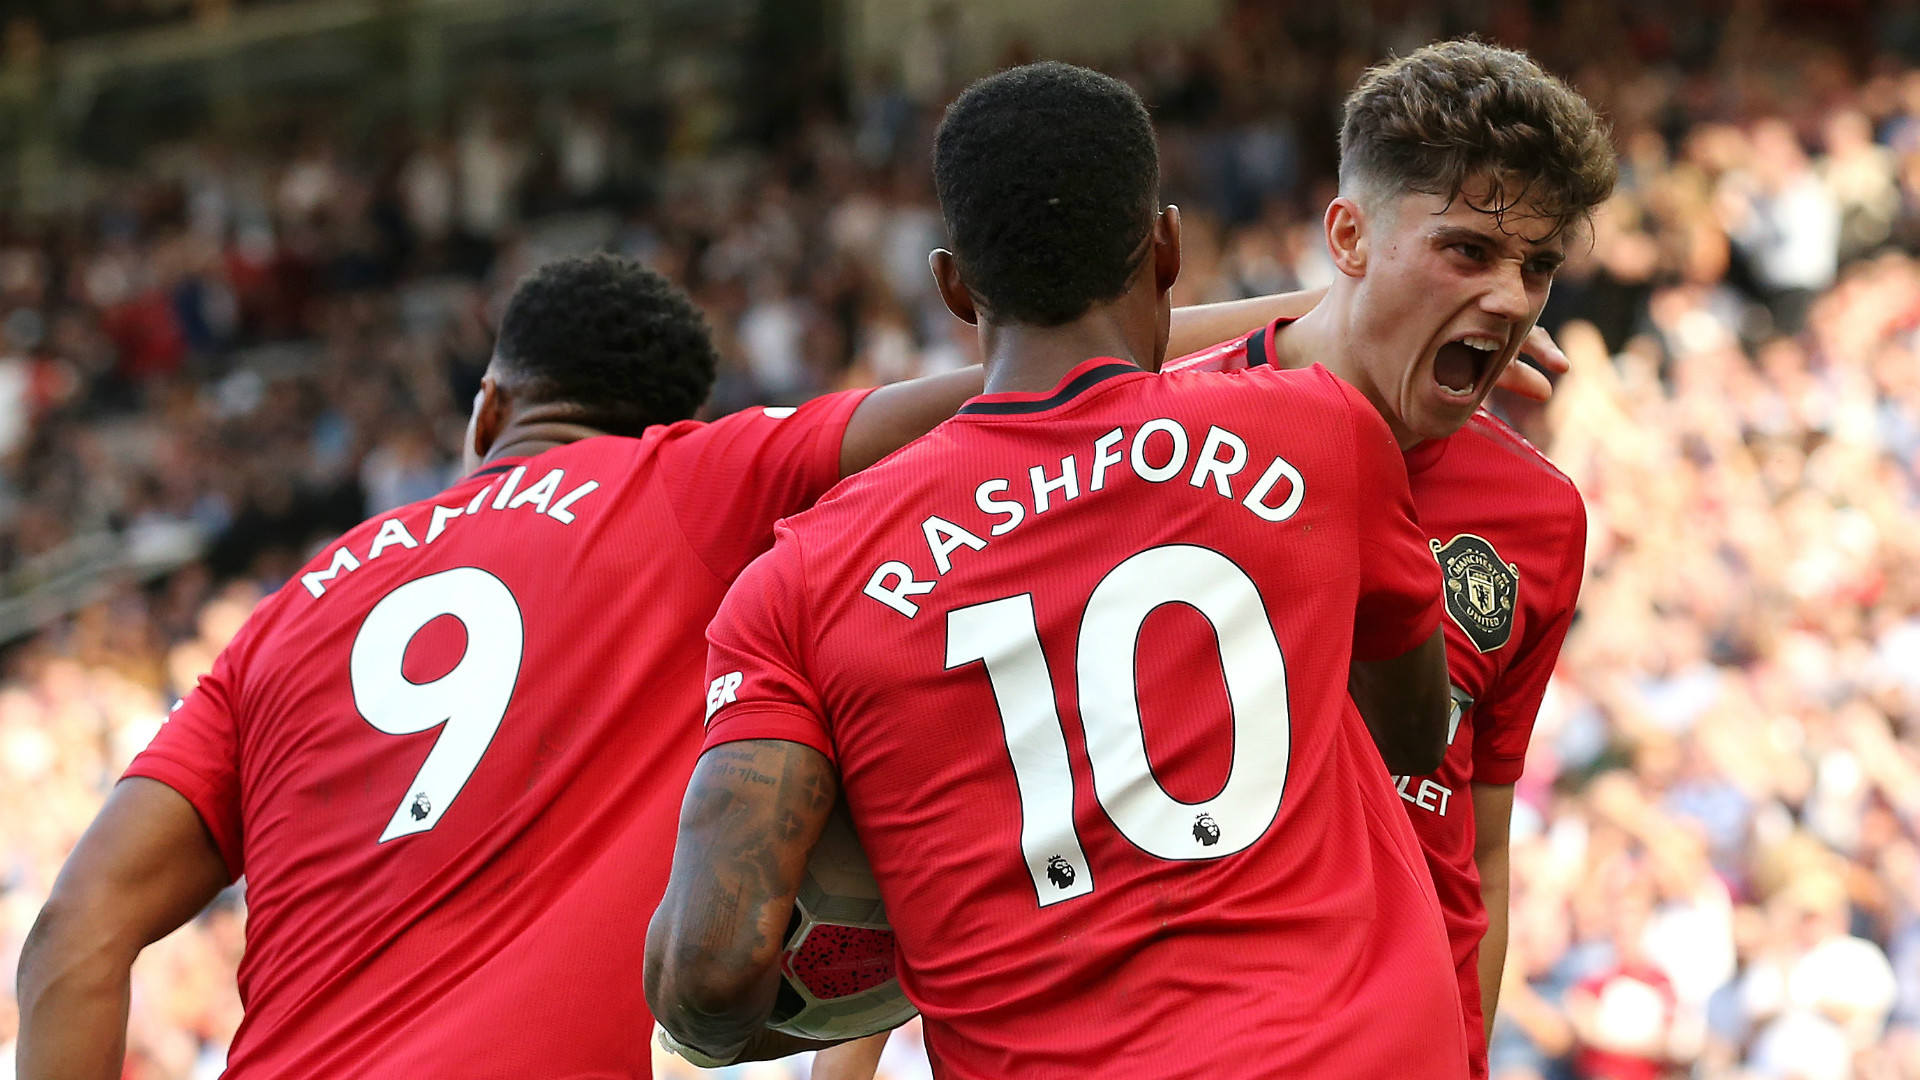 'Man Utd believe they can win every game' – James sees spark in Solskjaer's squad